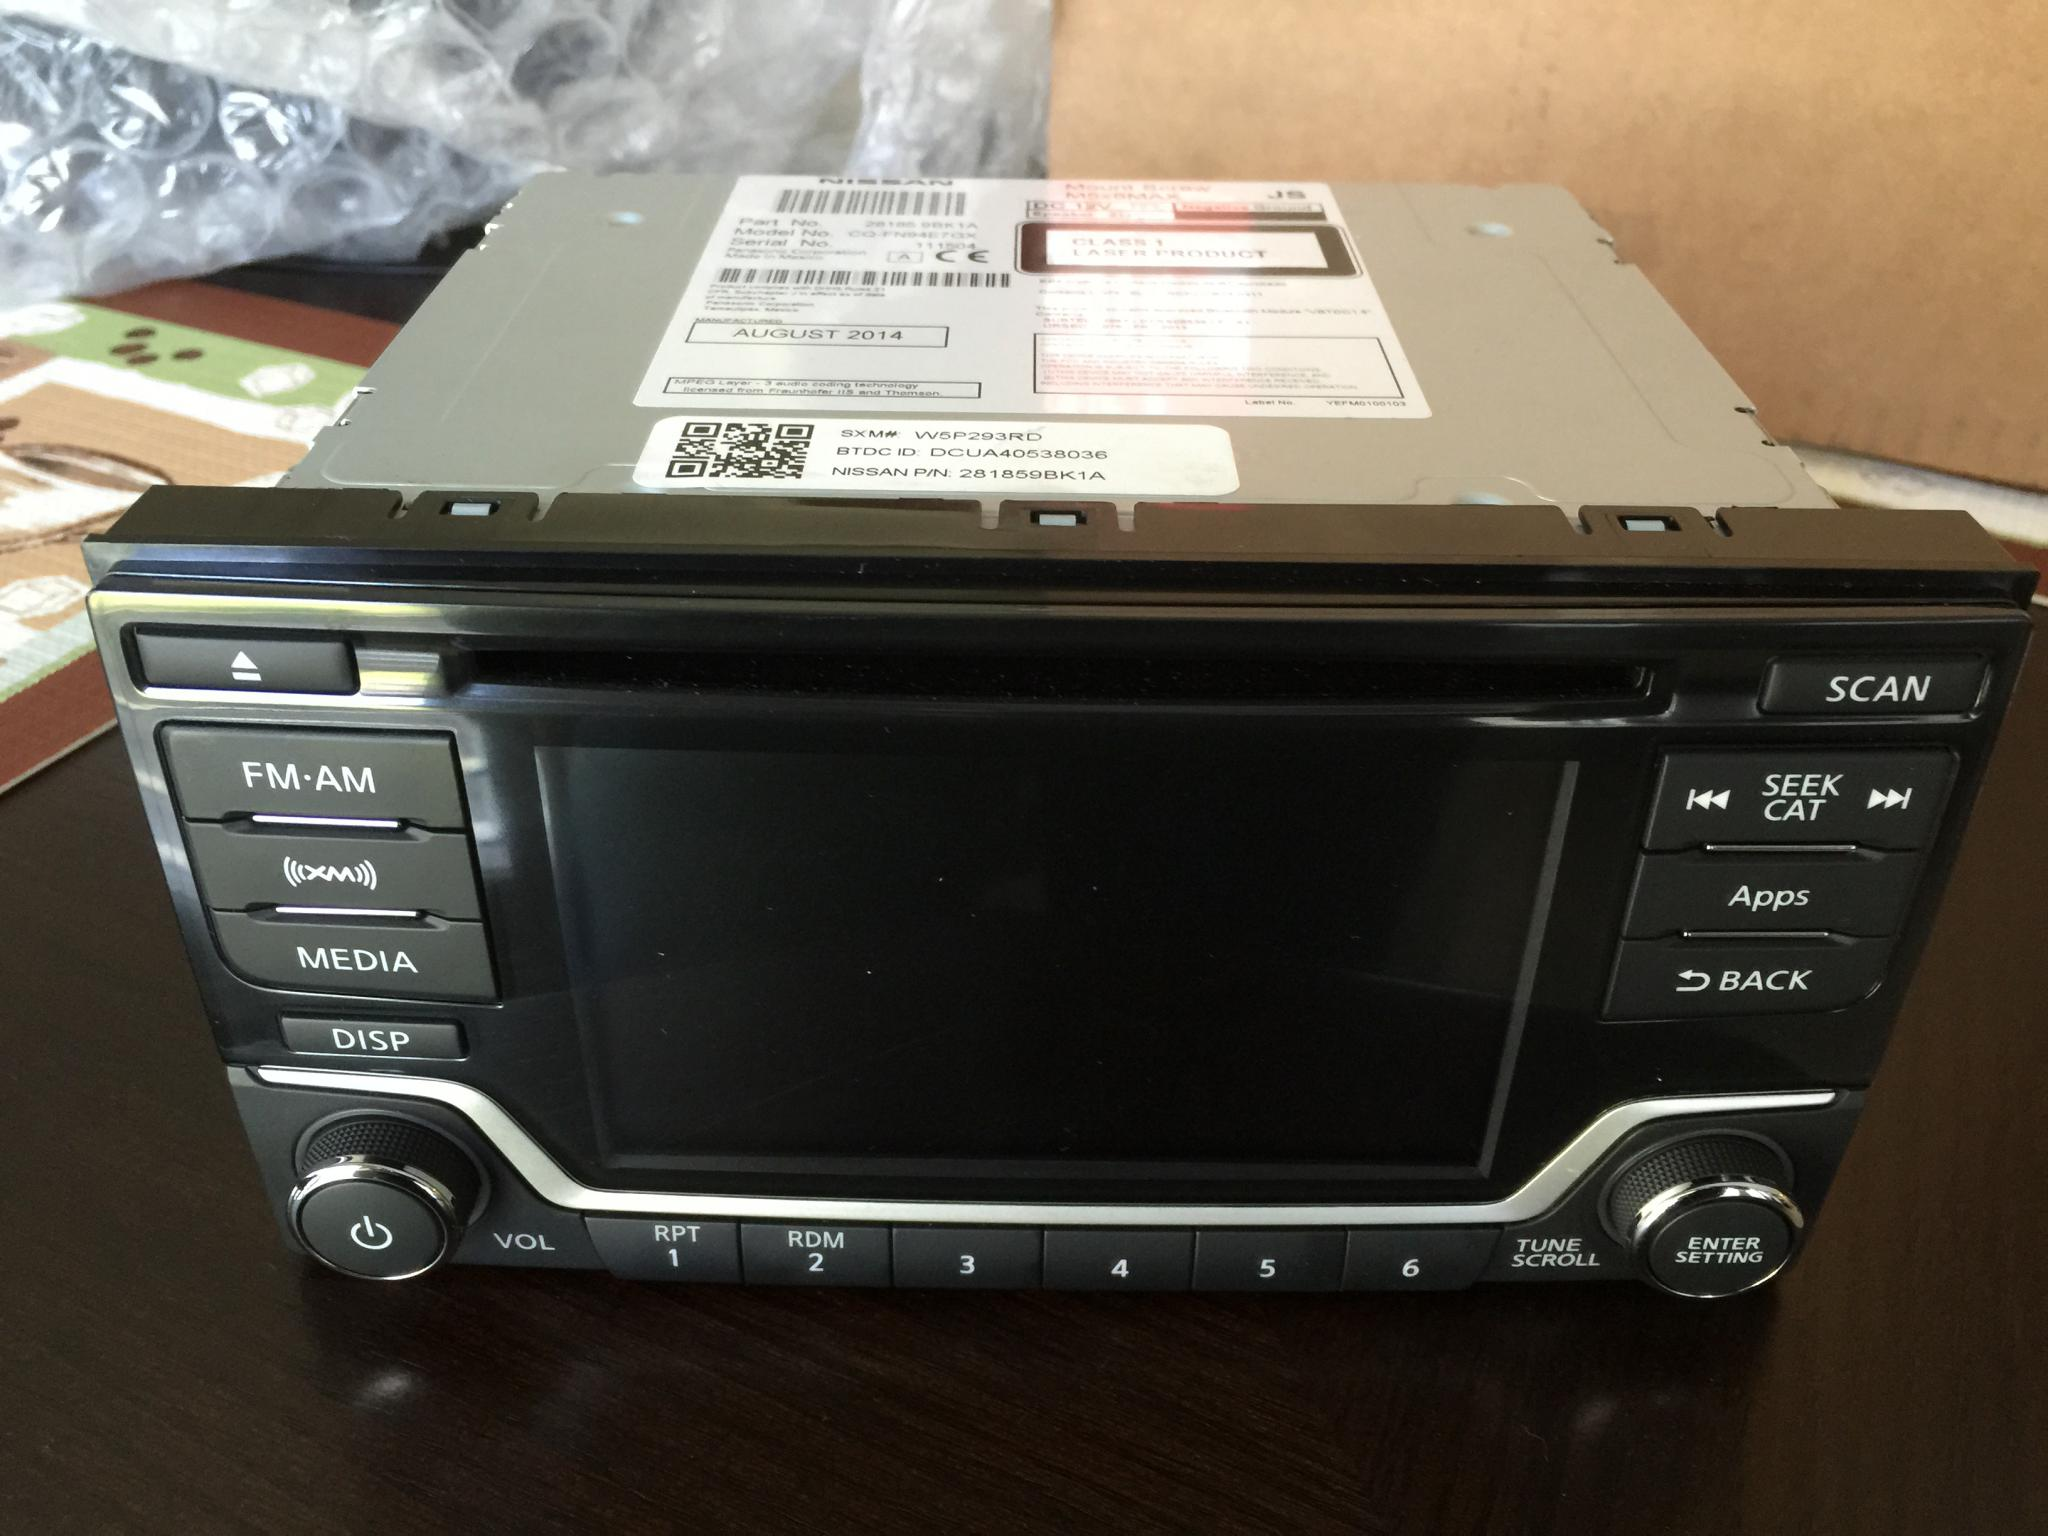 D Sv Oem Navigation Swap  pleted Display Radio Front View on 24 pin connector